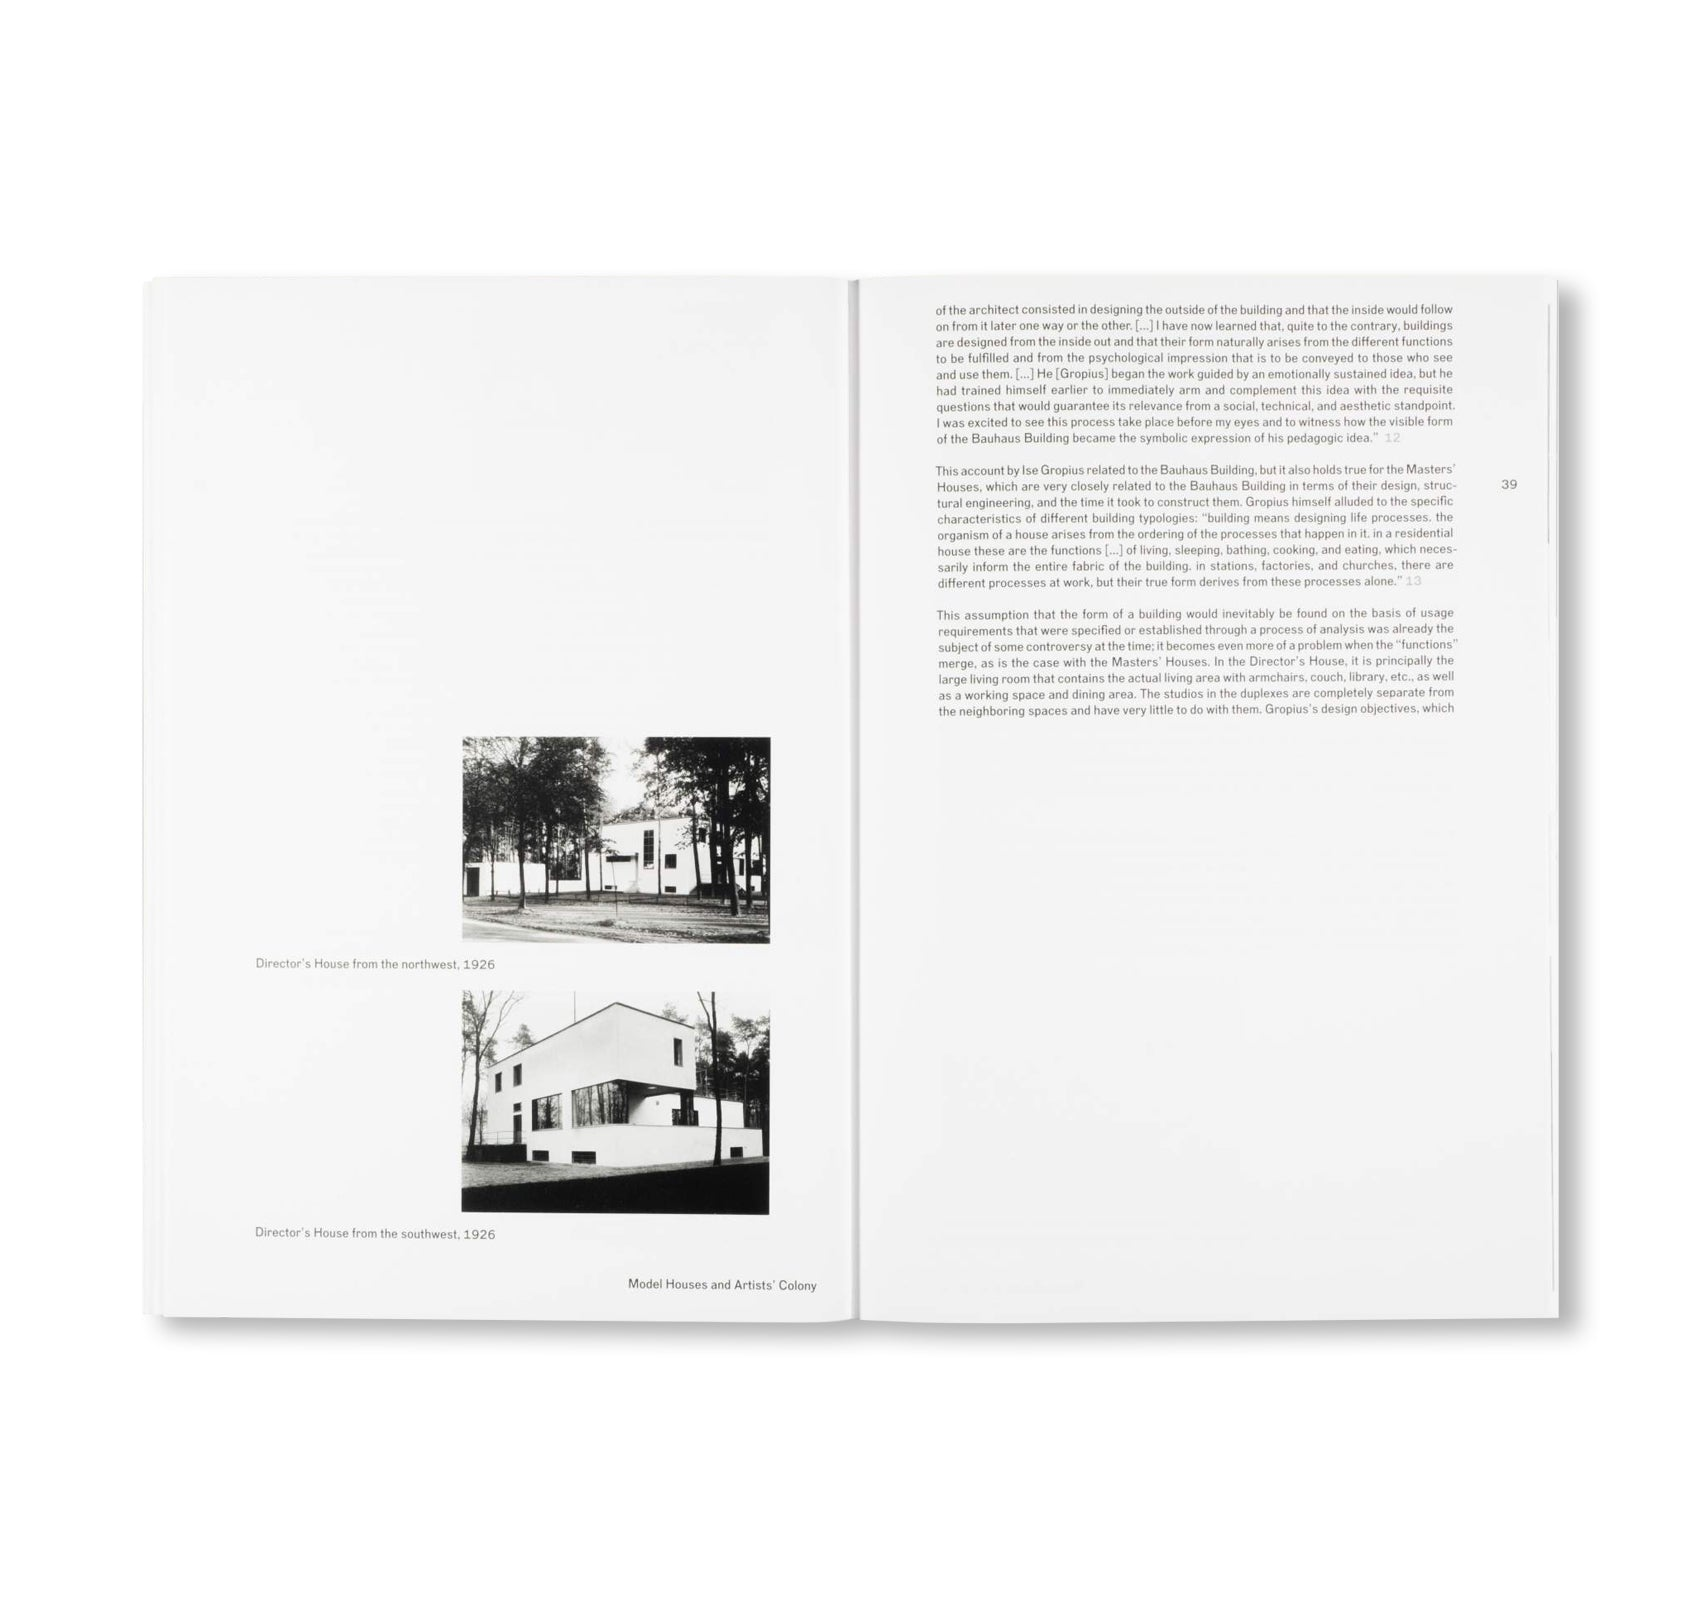 THE NEW MASTERS' HOUSES IN DESSAU / Edition Bauhaus 46 by Stiftung Bauhaus Dessau